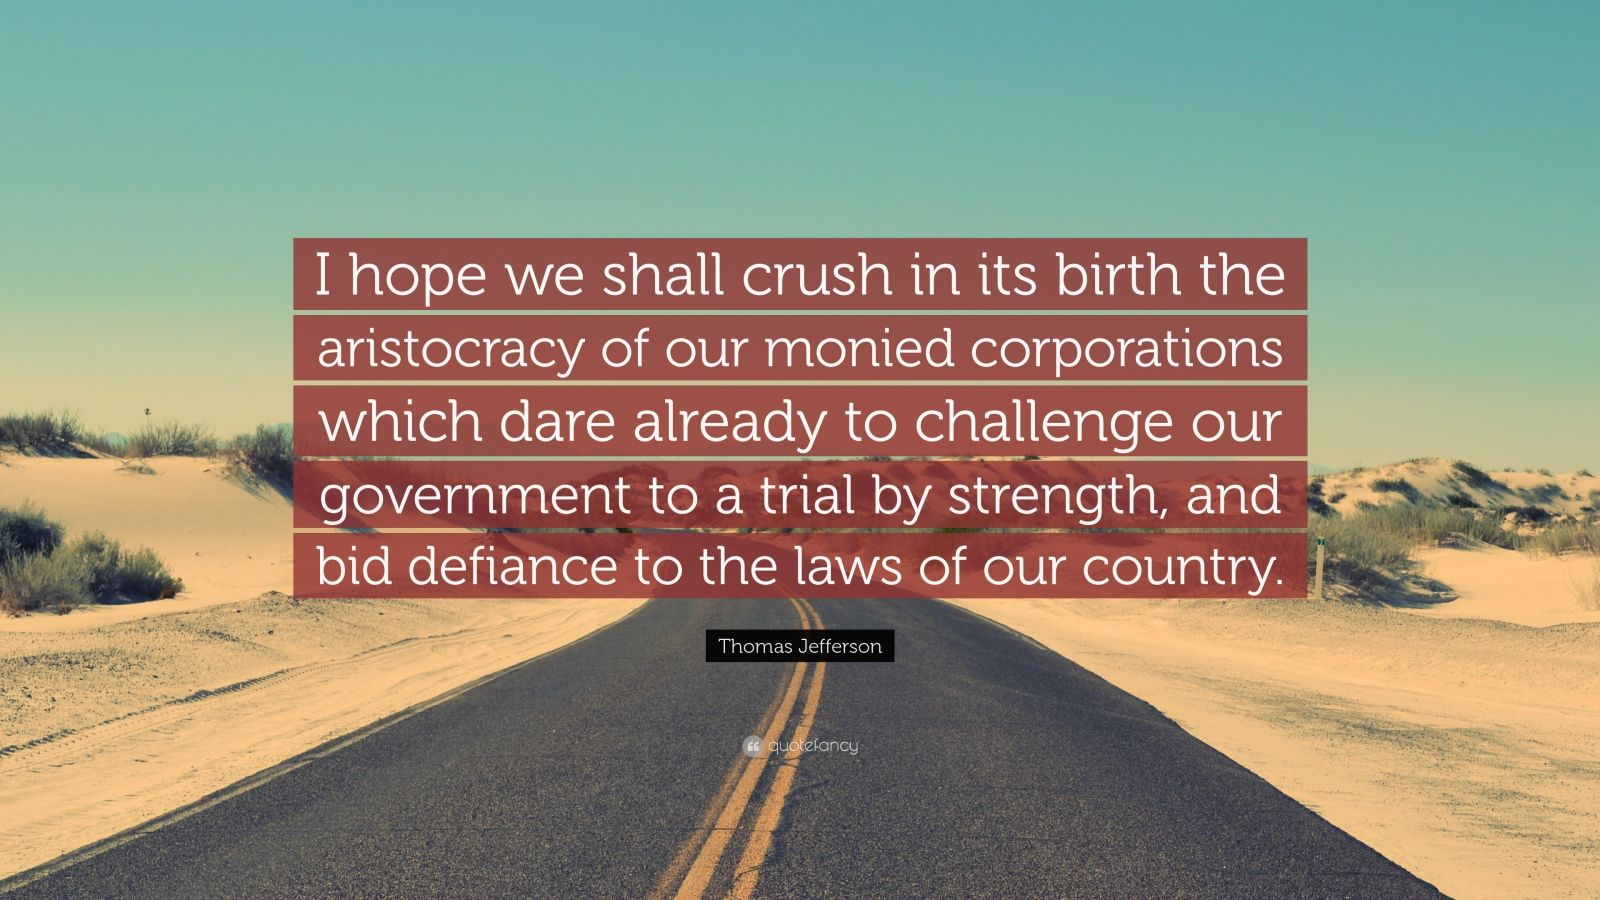 """Thomas Jefferson Quote: """"I hope we shall crush in its birth the aristocracy of our monied corporations which dare already to challenge our government to a trial by strength, and bid defiance to the laws of our country."""""""